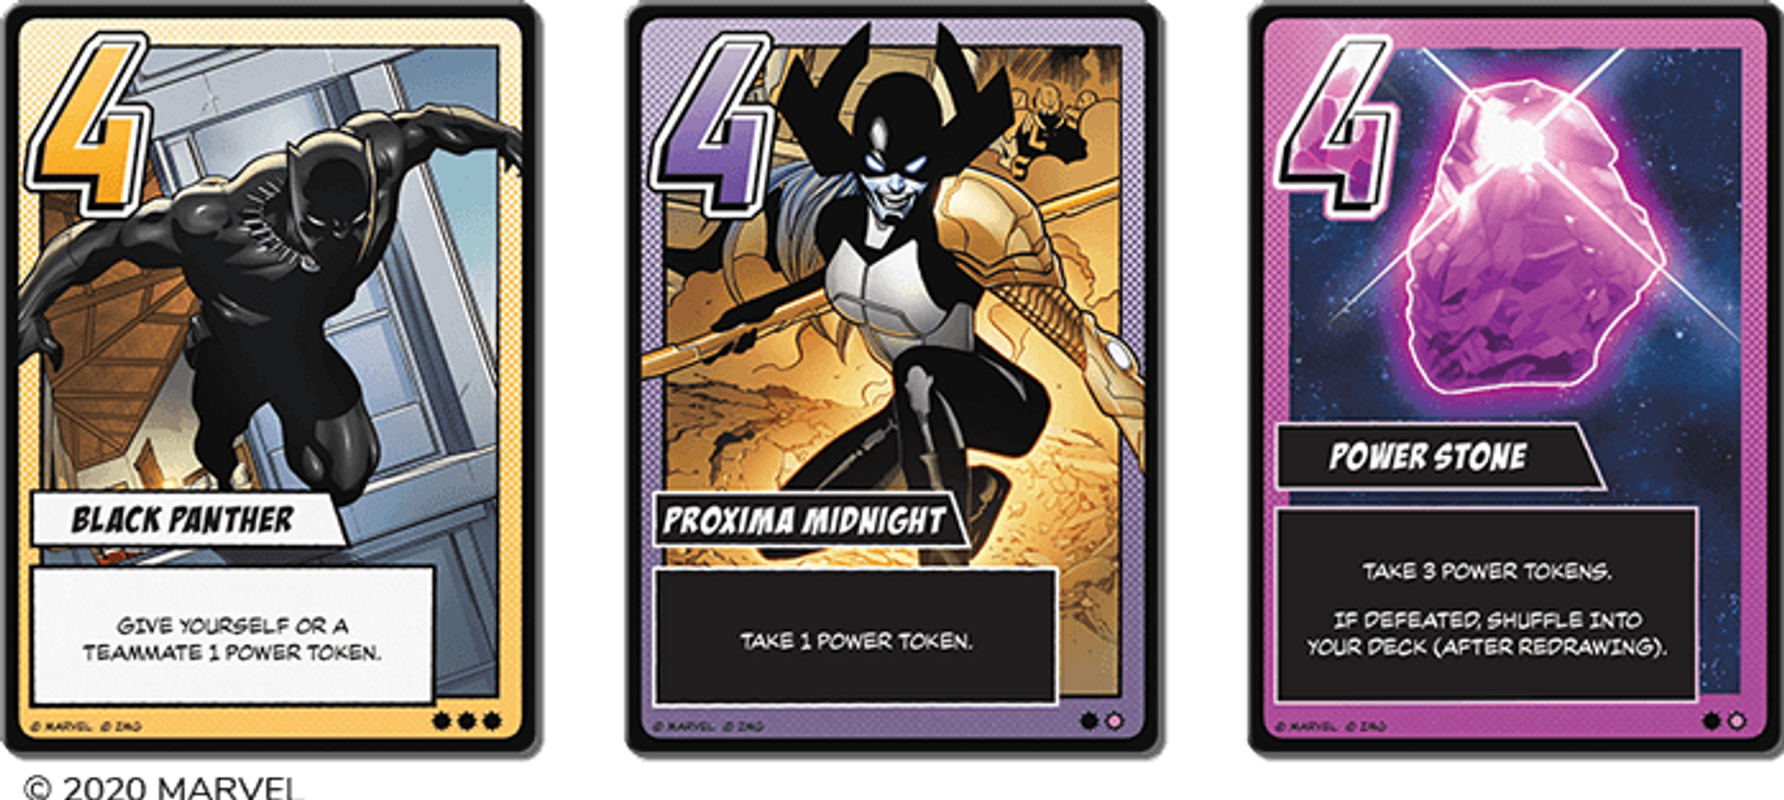 Infinity Gauntlet: A Love Letter Game cards